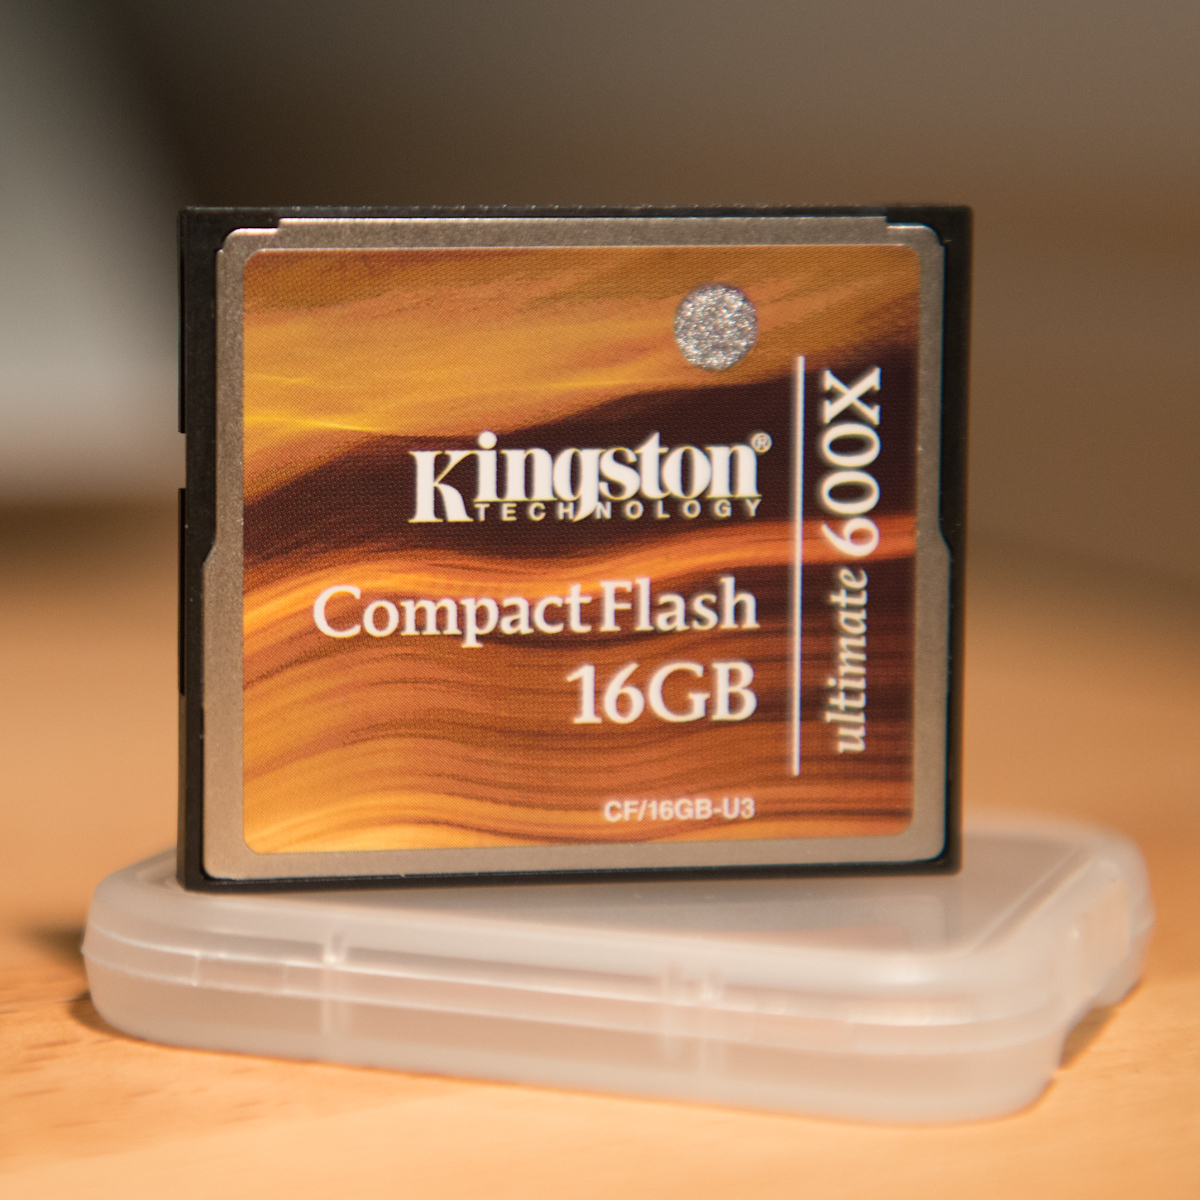 D800 and Kingston memory cards